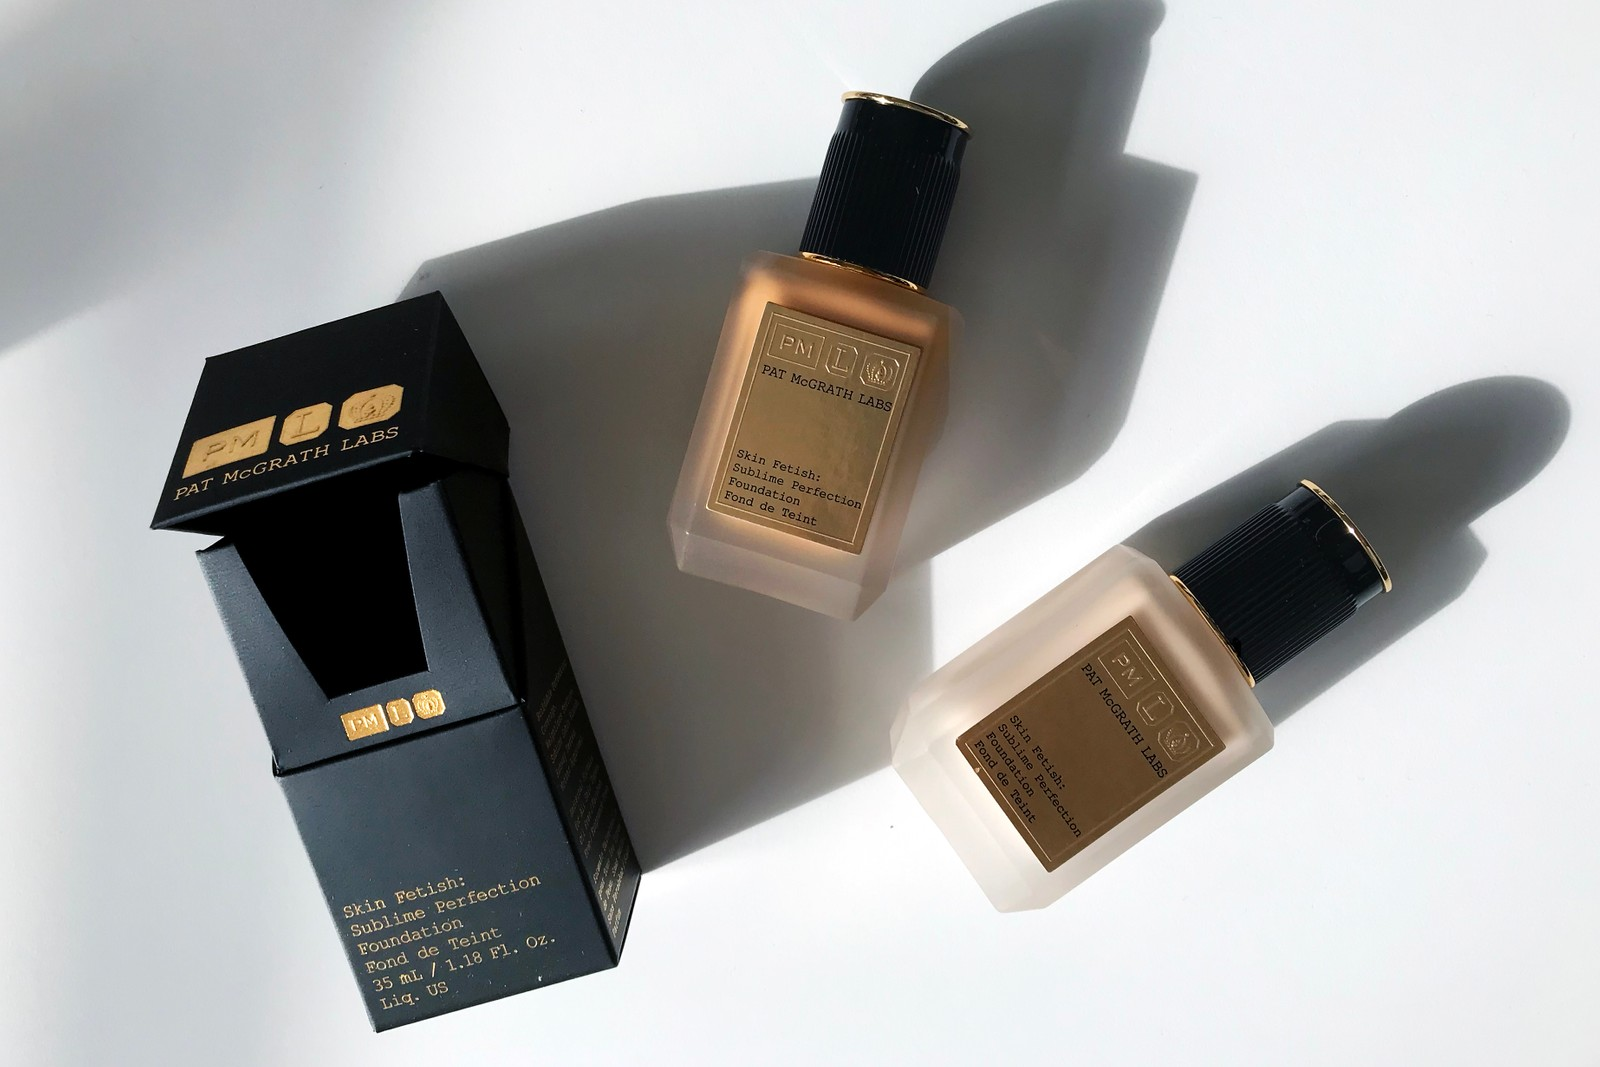 Pat McGrath Sublime Perfection Foundation Review Beauty Makeup Skin Fetish Collection Price